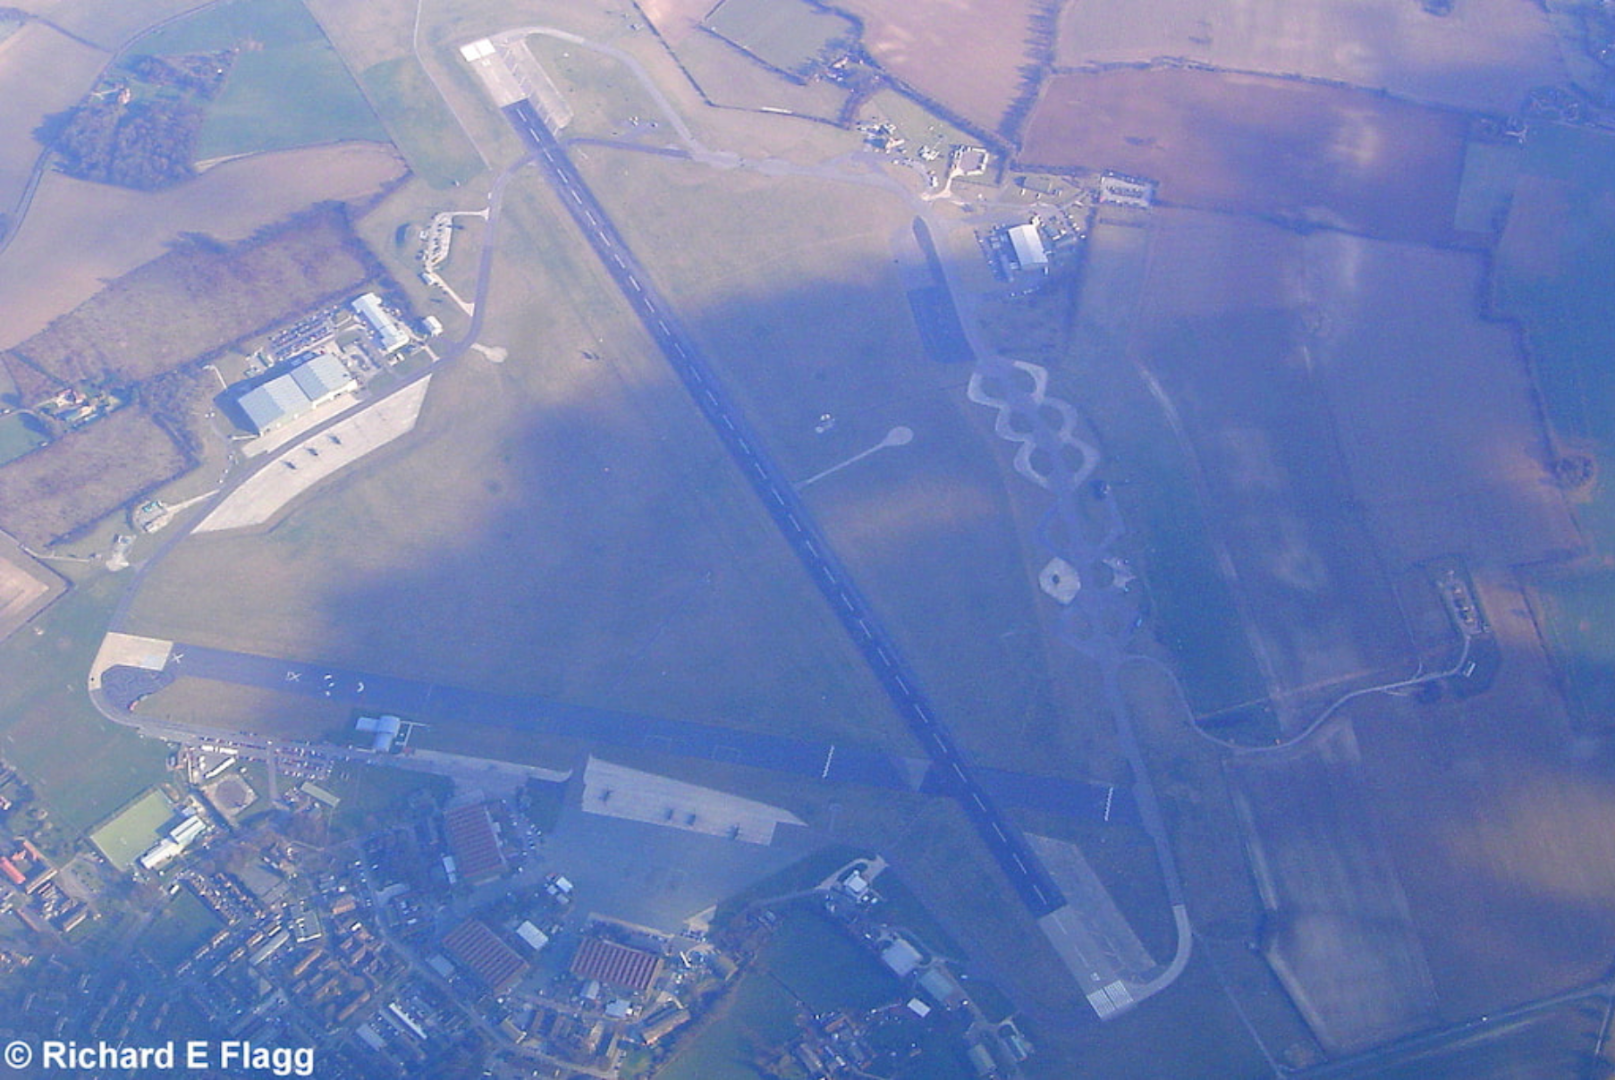 002Aerial View of RAF Odiham Airfield - 8 March 2004.png